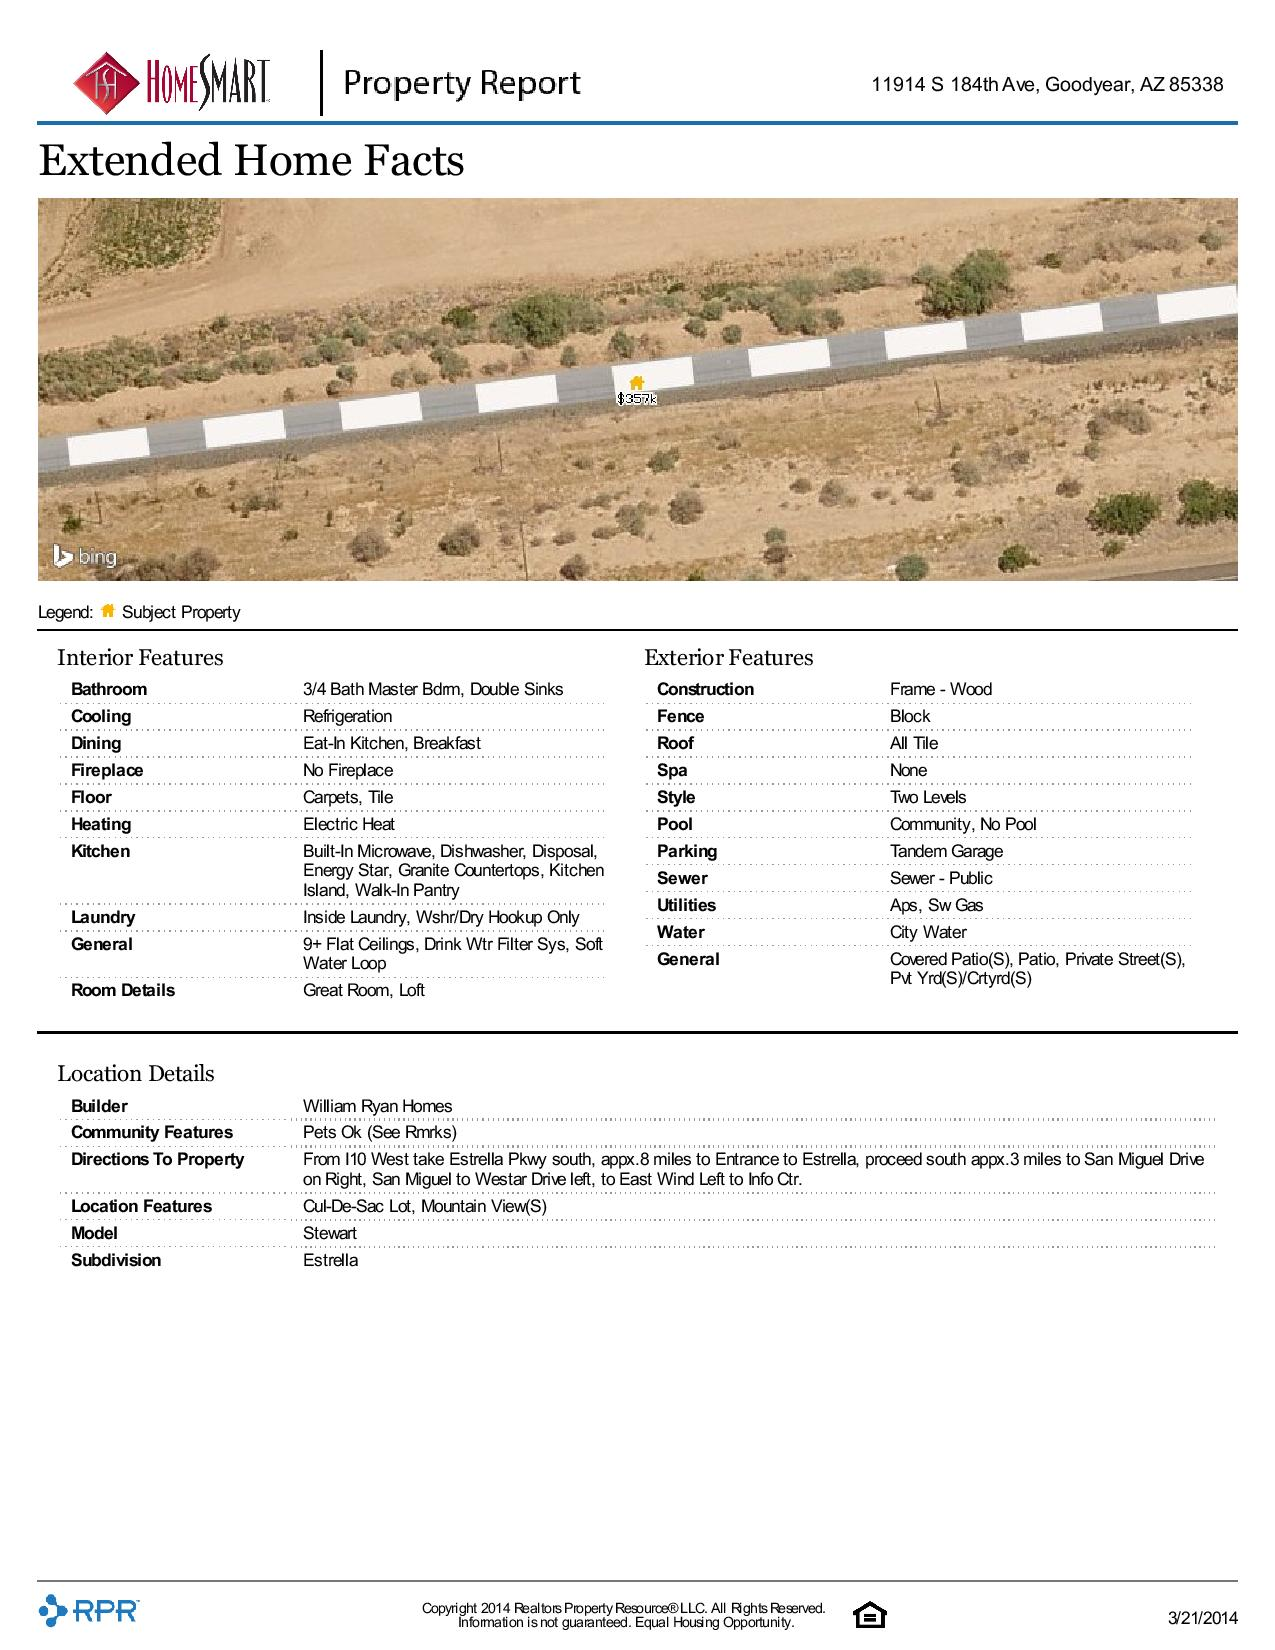 11914-S-184th-Ave-Goodyear-AZ-85338-page-004